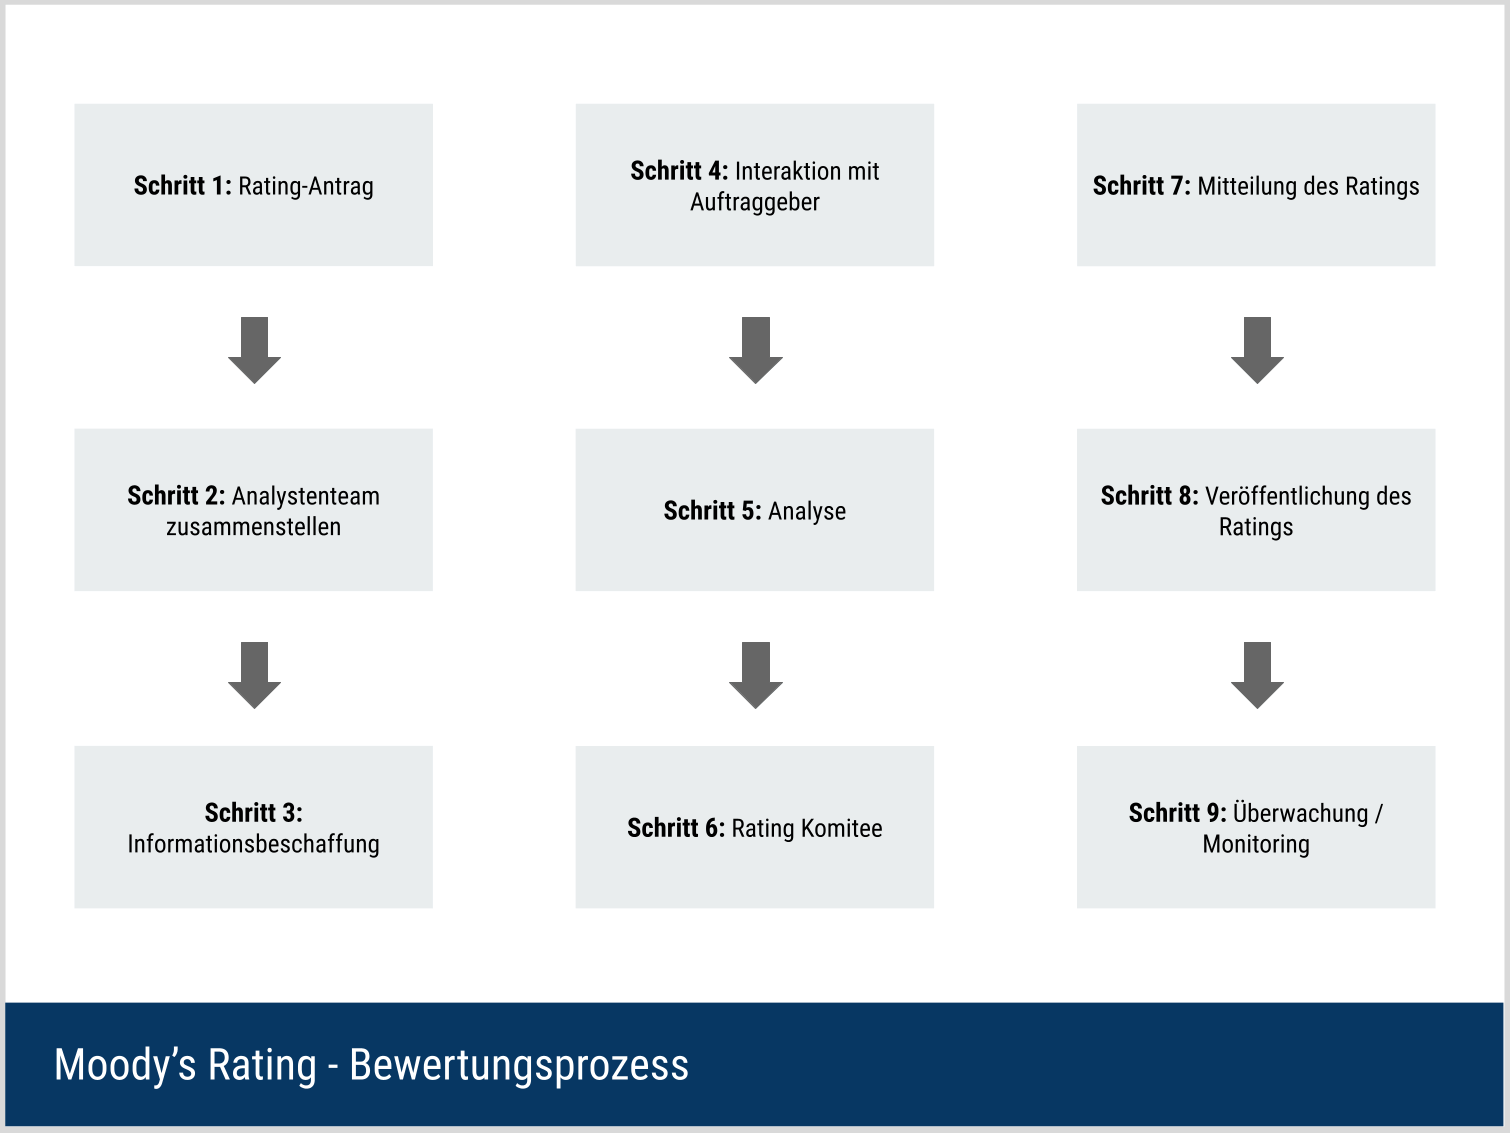 Moody's Rating - Bewertungsprozess